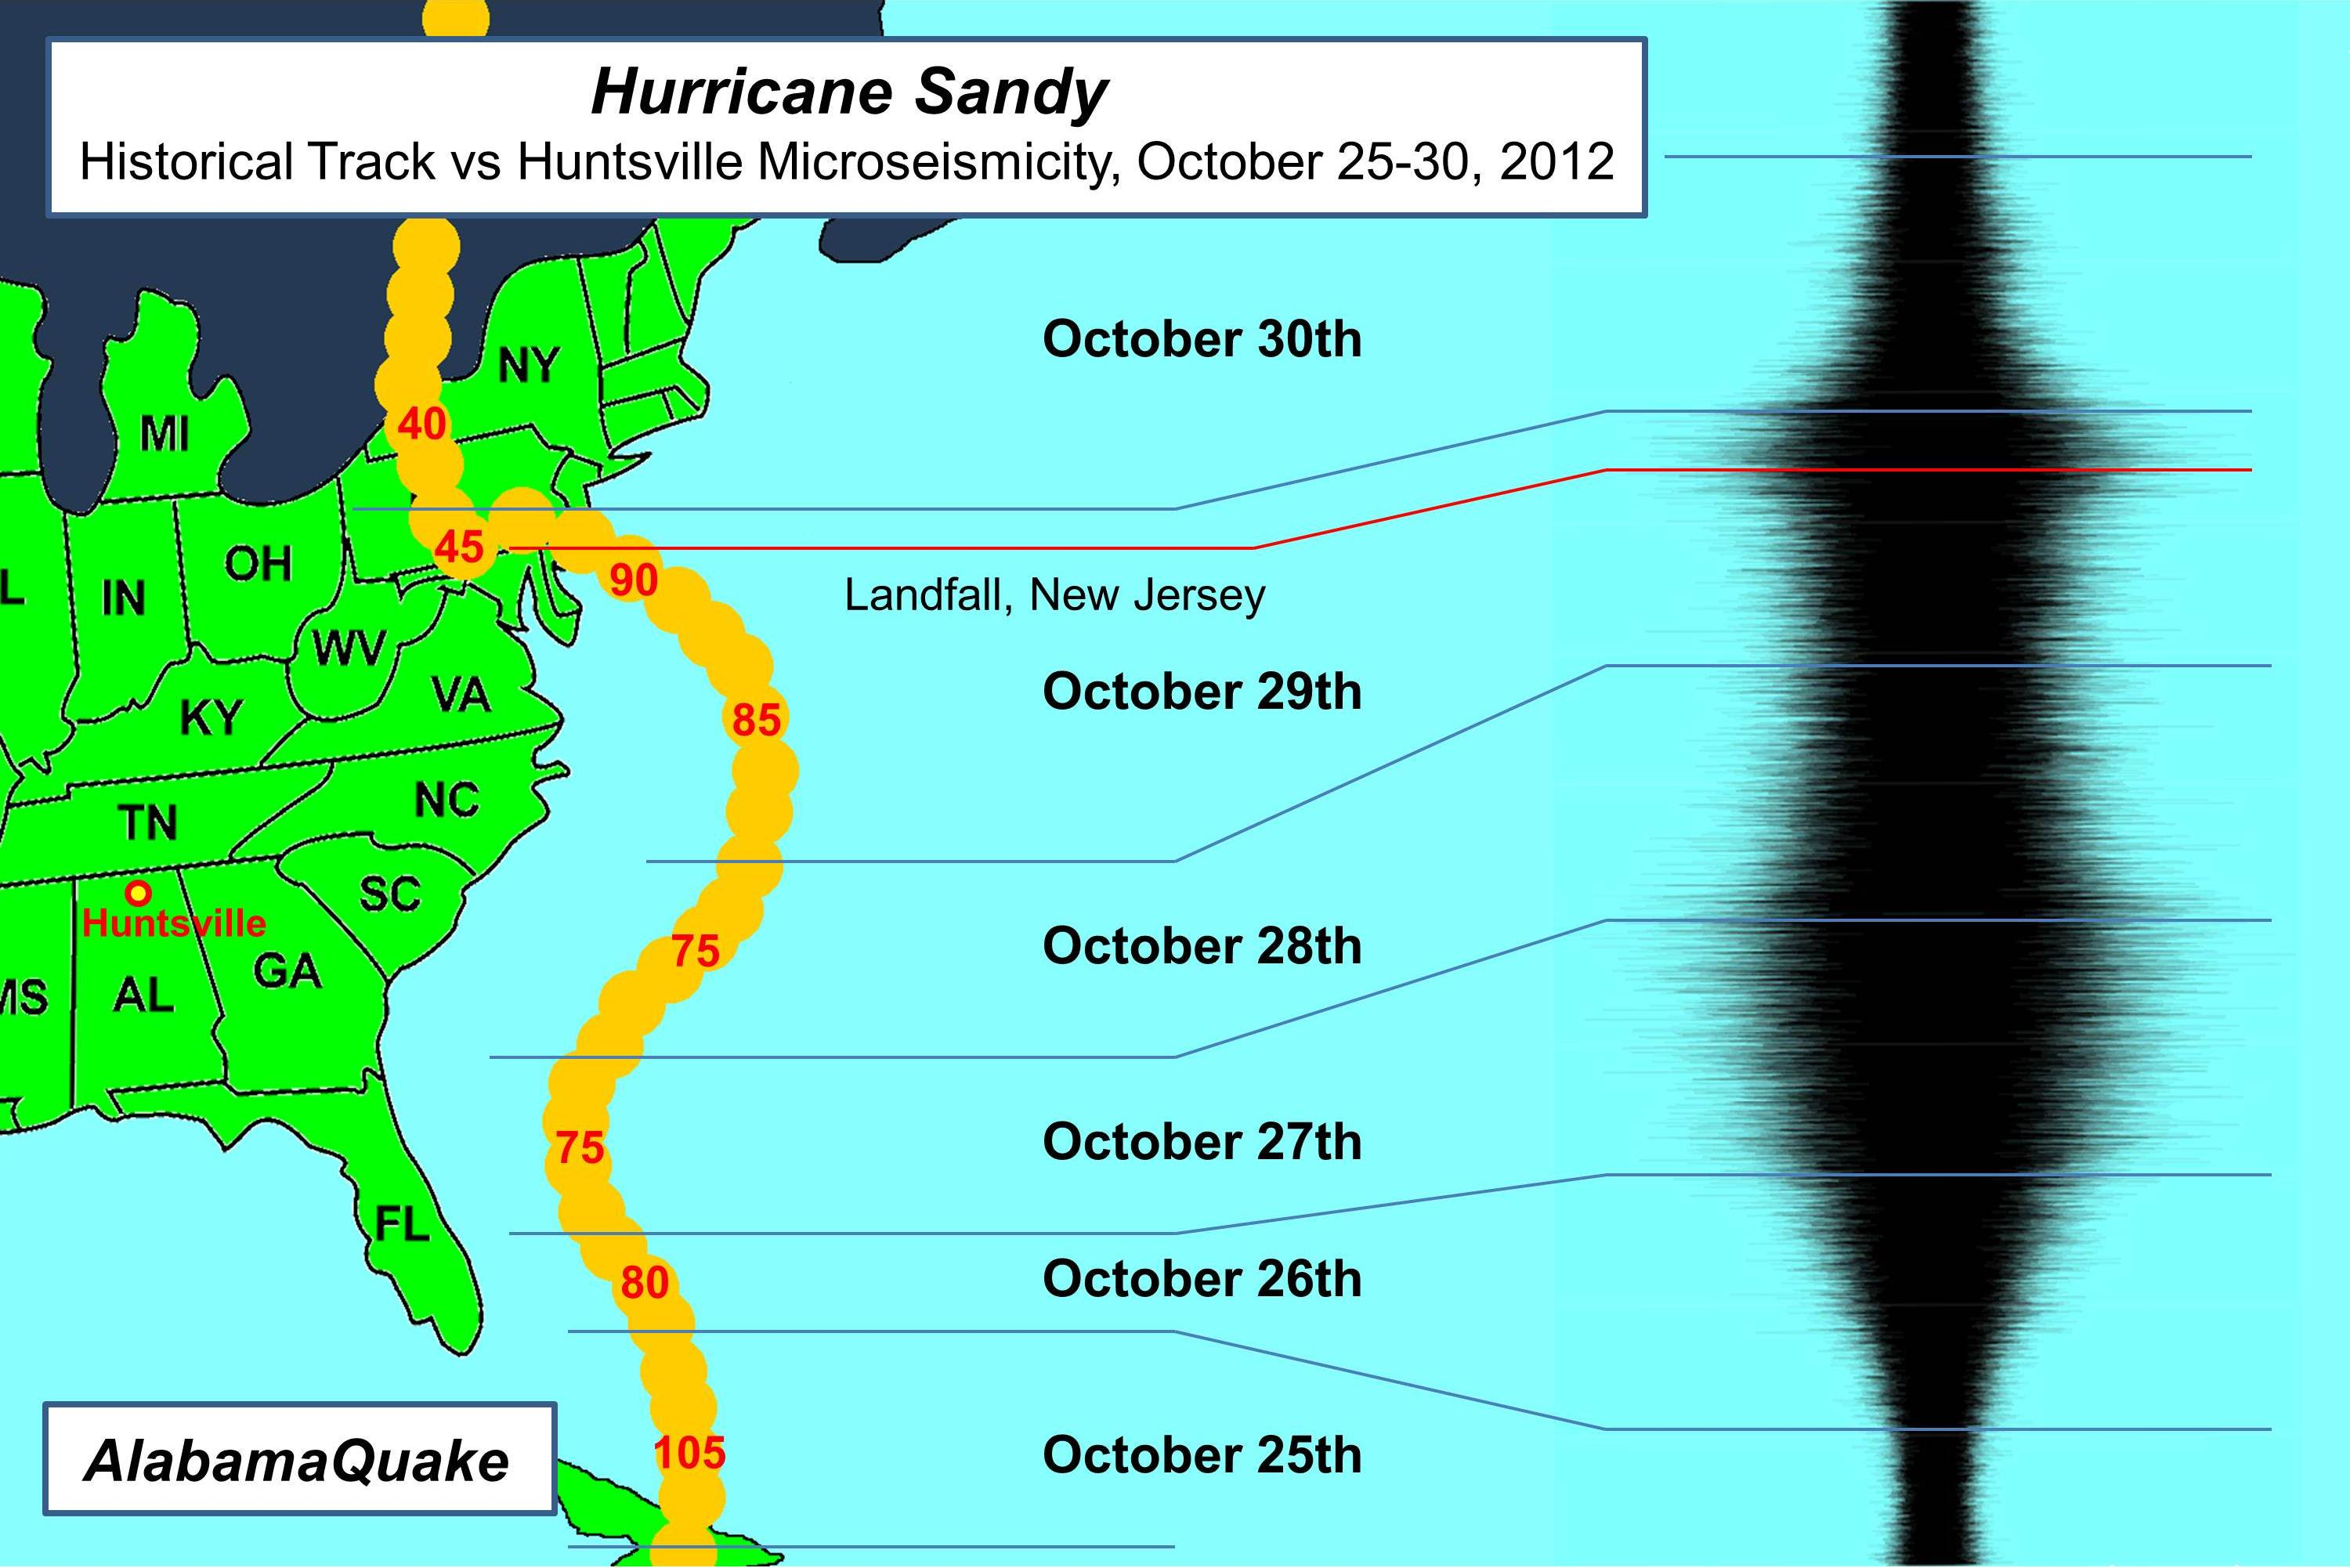 Hurricane Sandy and Huntsville Microseismicity